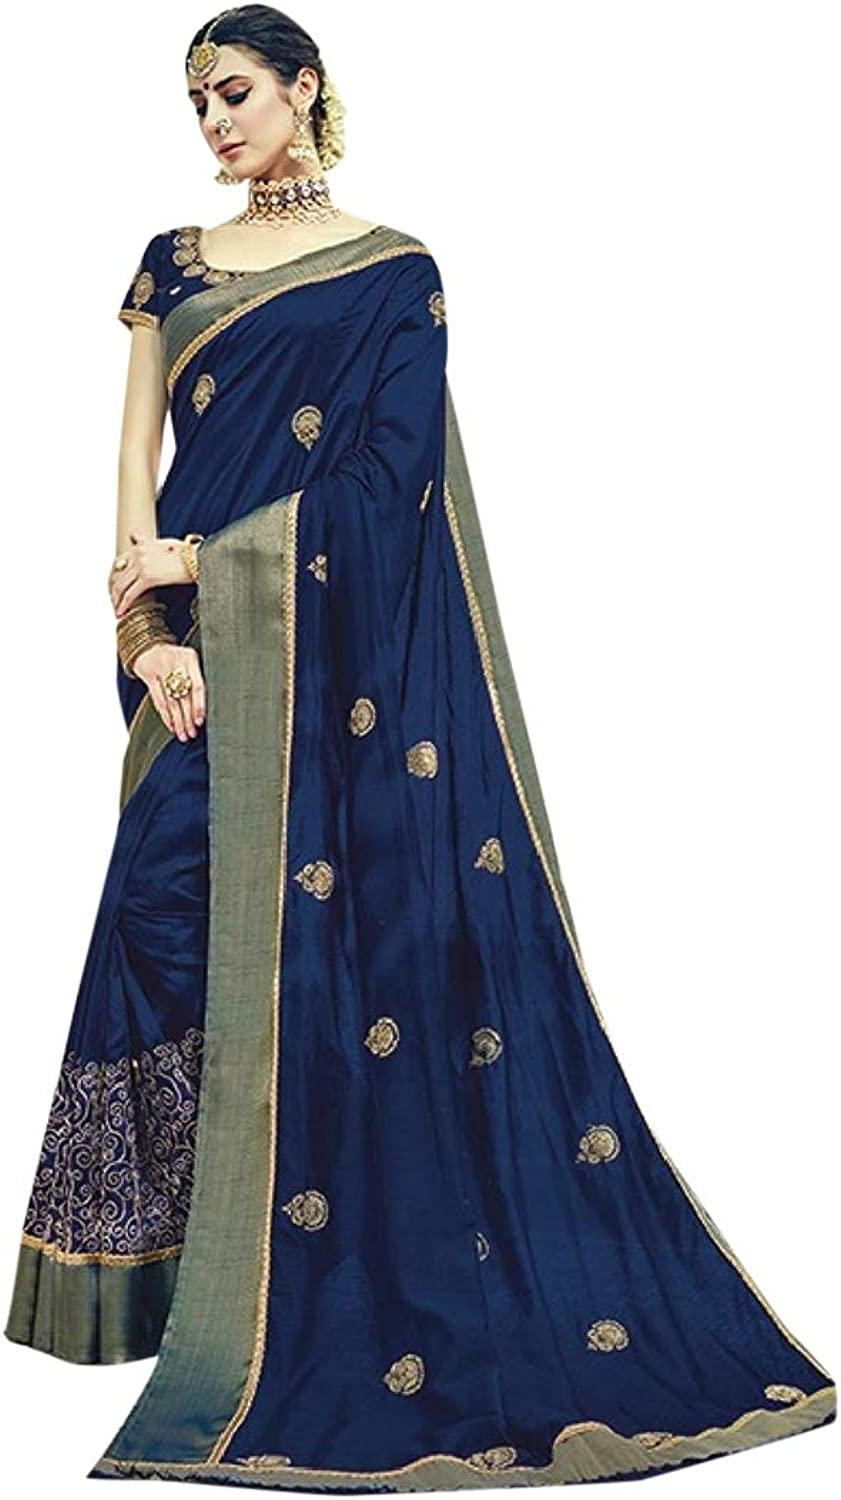 Indian Ethnic Navy bluee Border With Booty Saree With Blouse Embroidered Classic Designer Collecion Women Stylish Party Formal Wear 7281